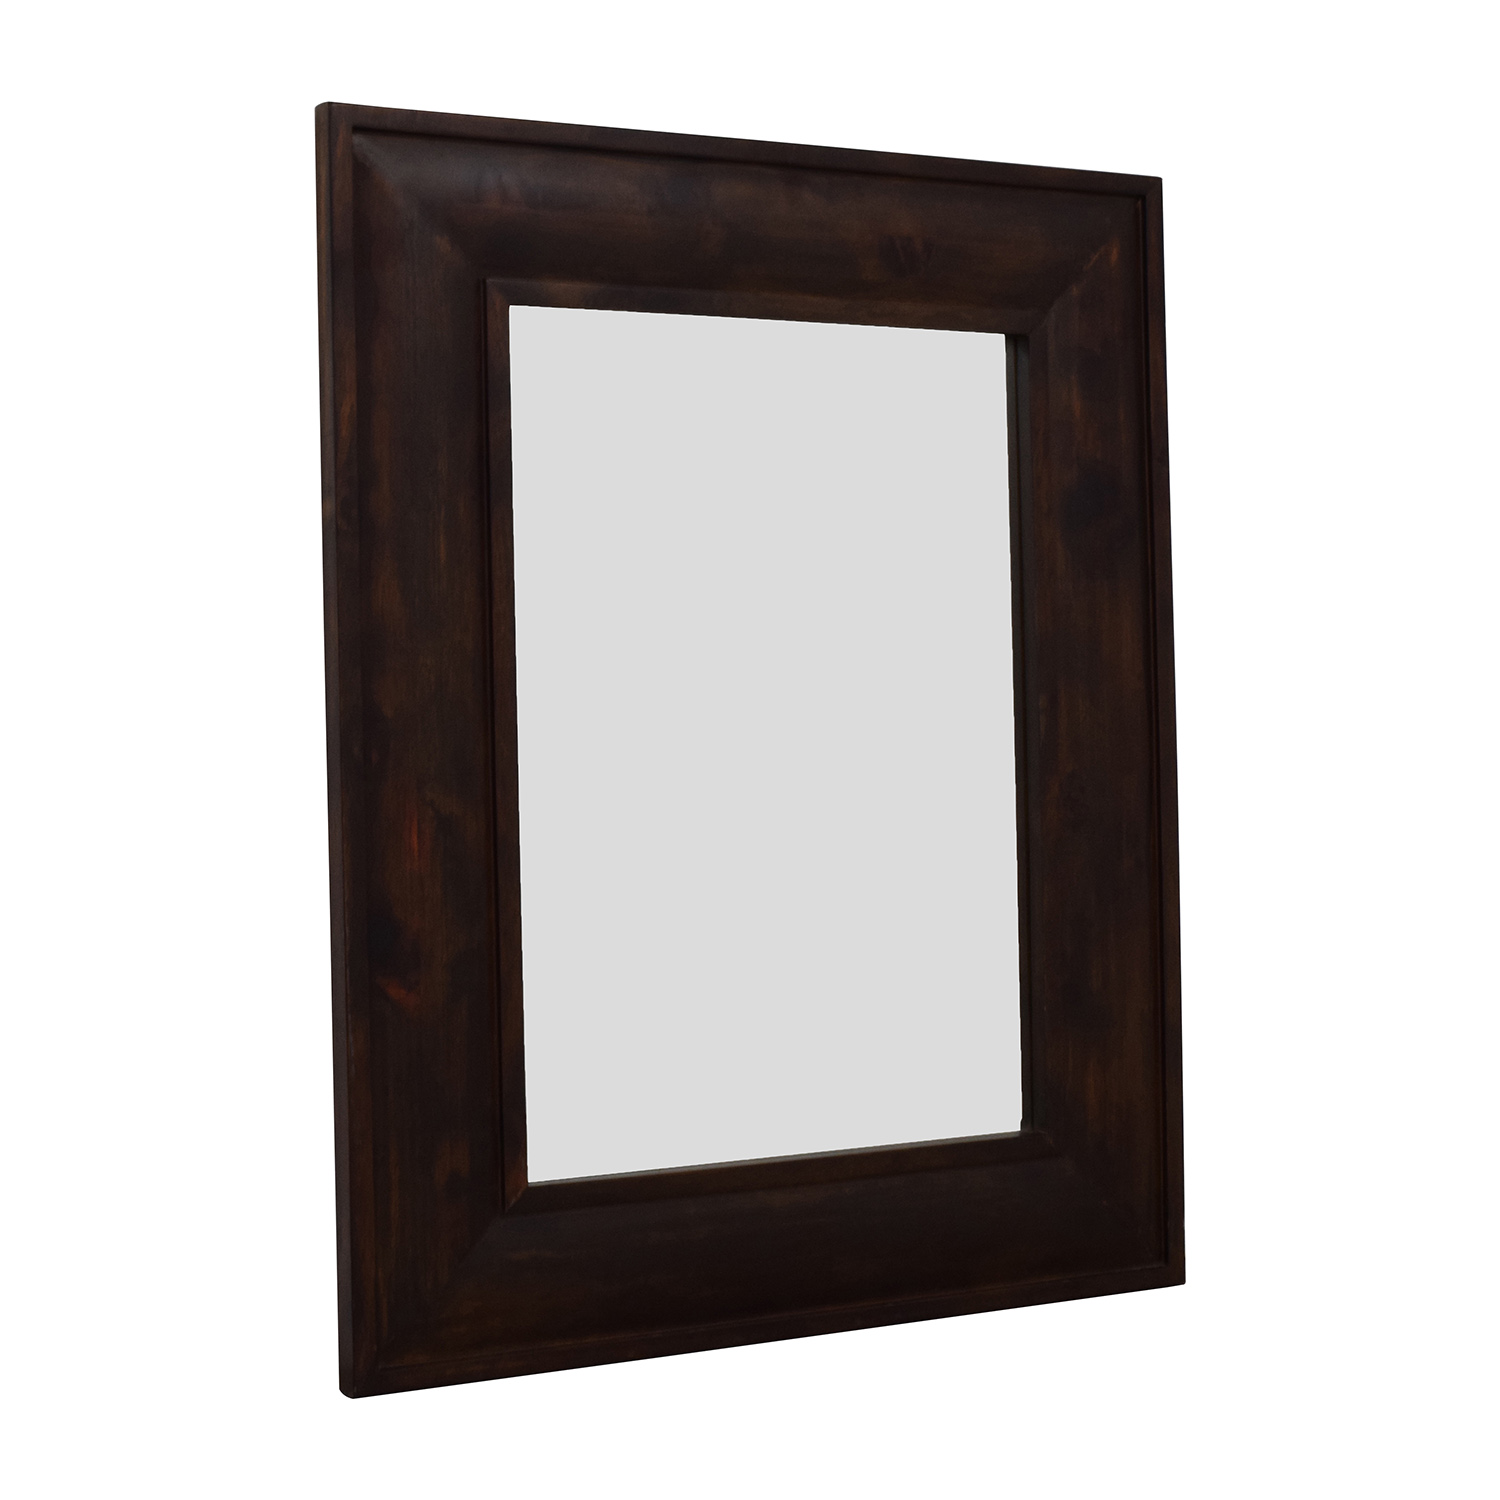 West Elm West Elm Wood Framed Mirror Decor